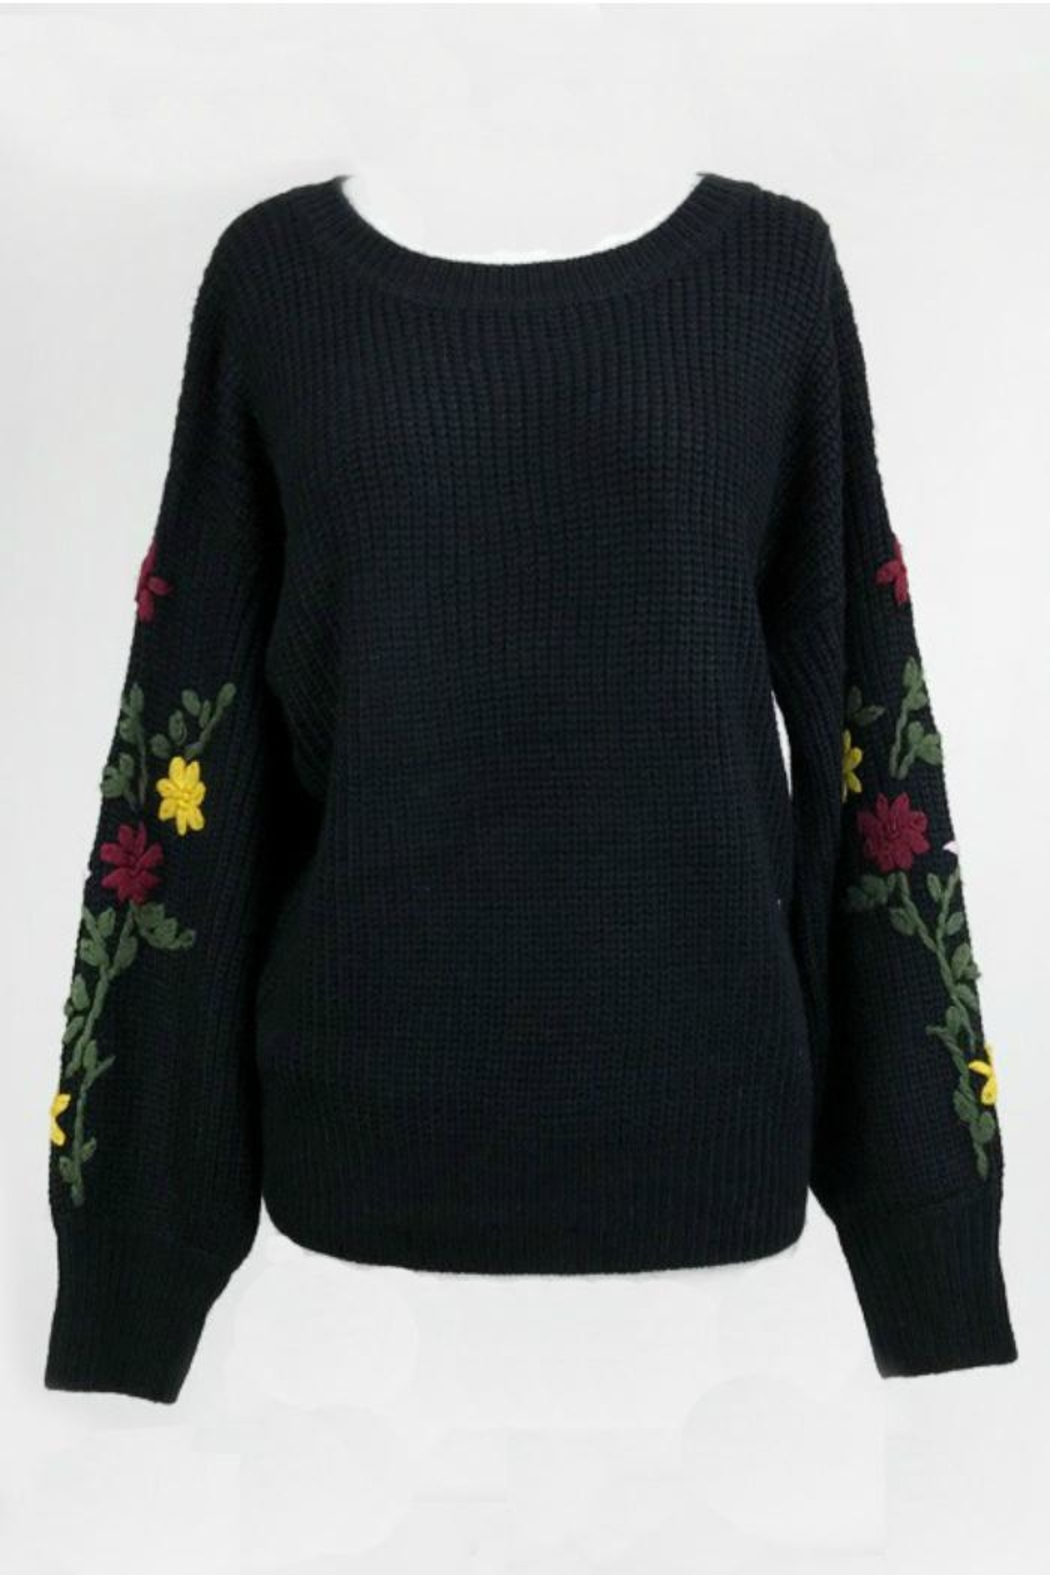 3abb6fc167f Dreamers Embroidered Black Sweater from California by Apricot Lane ...